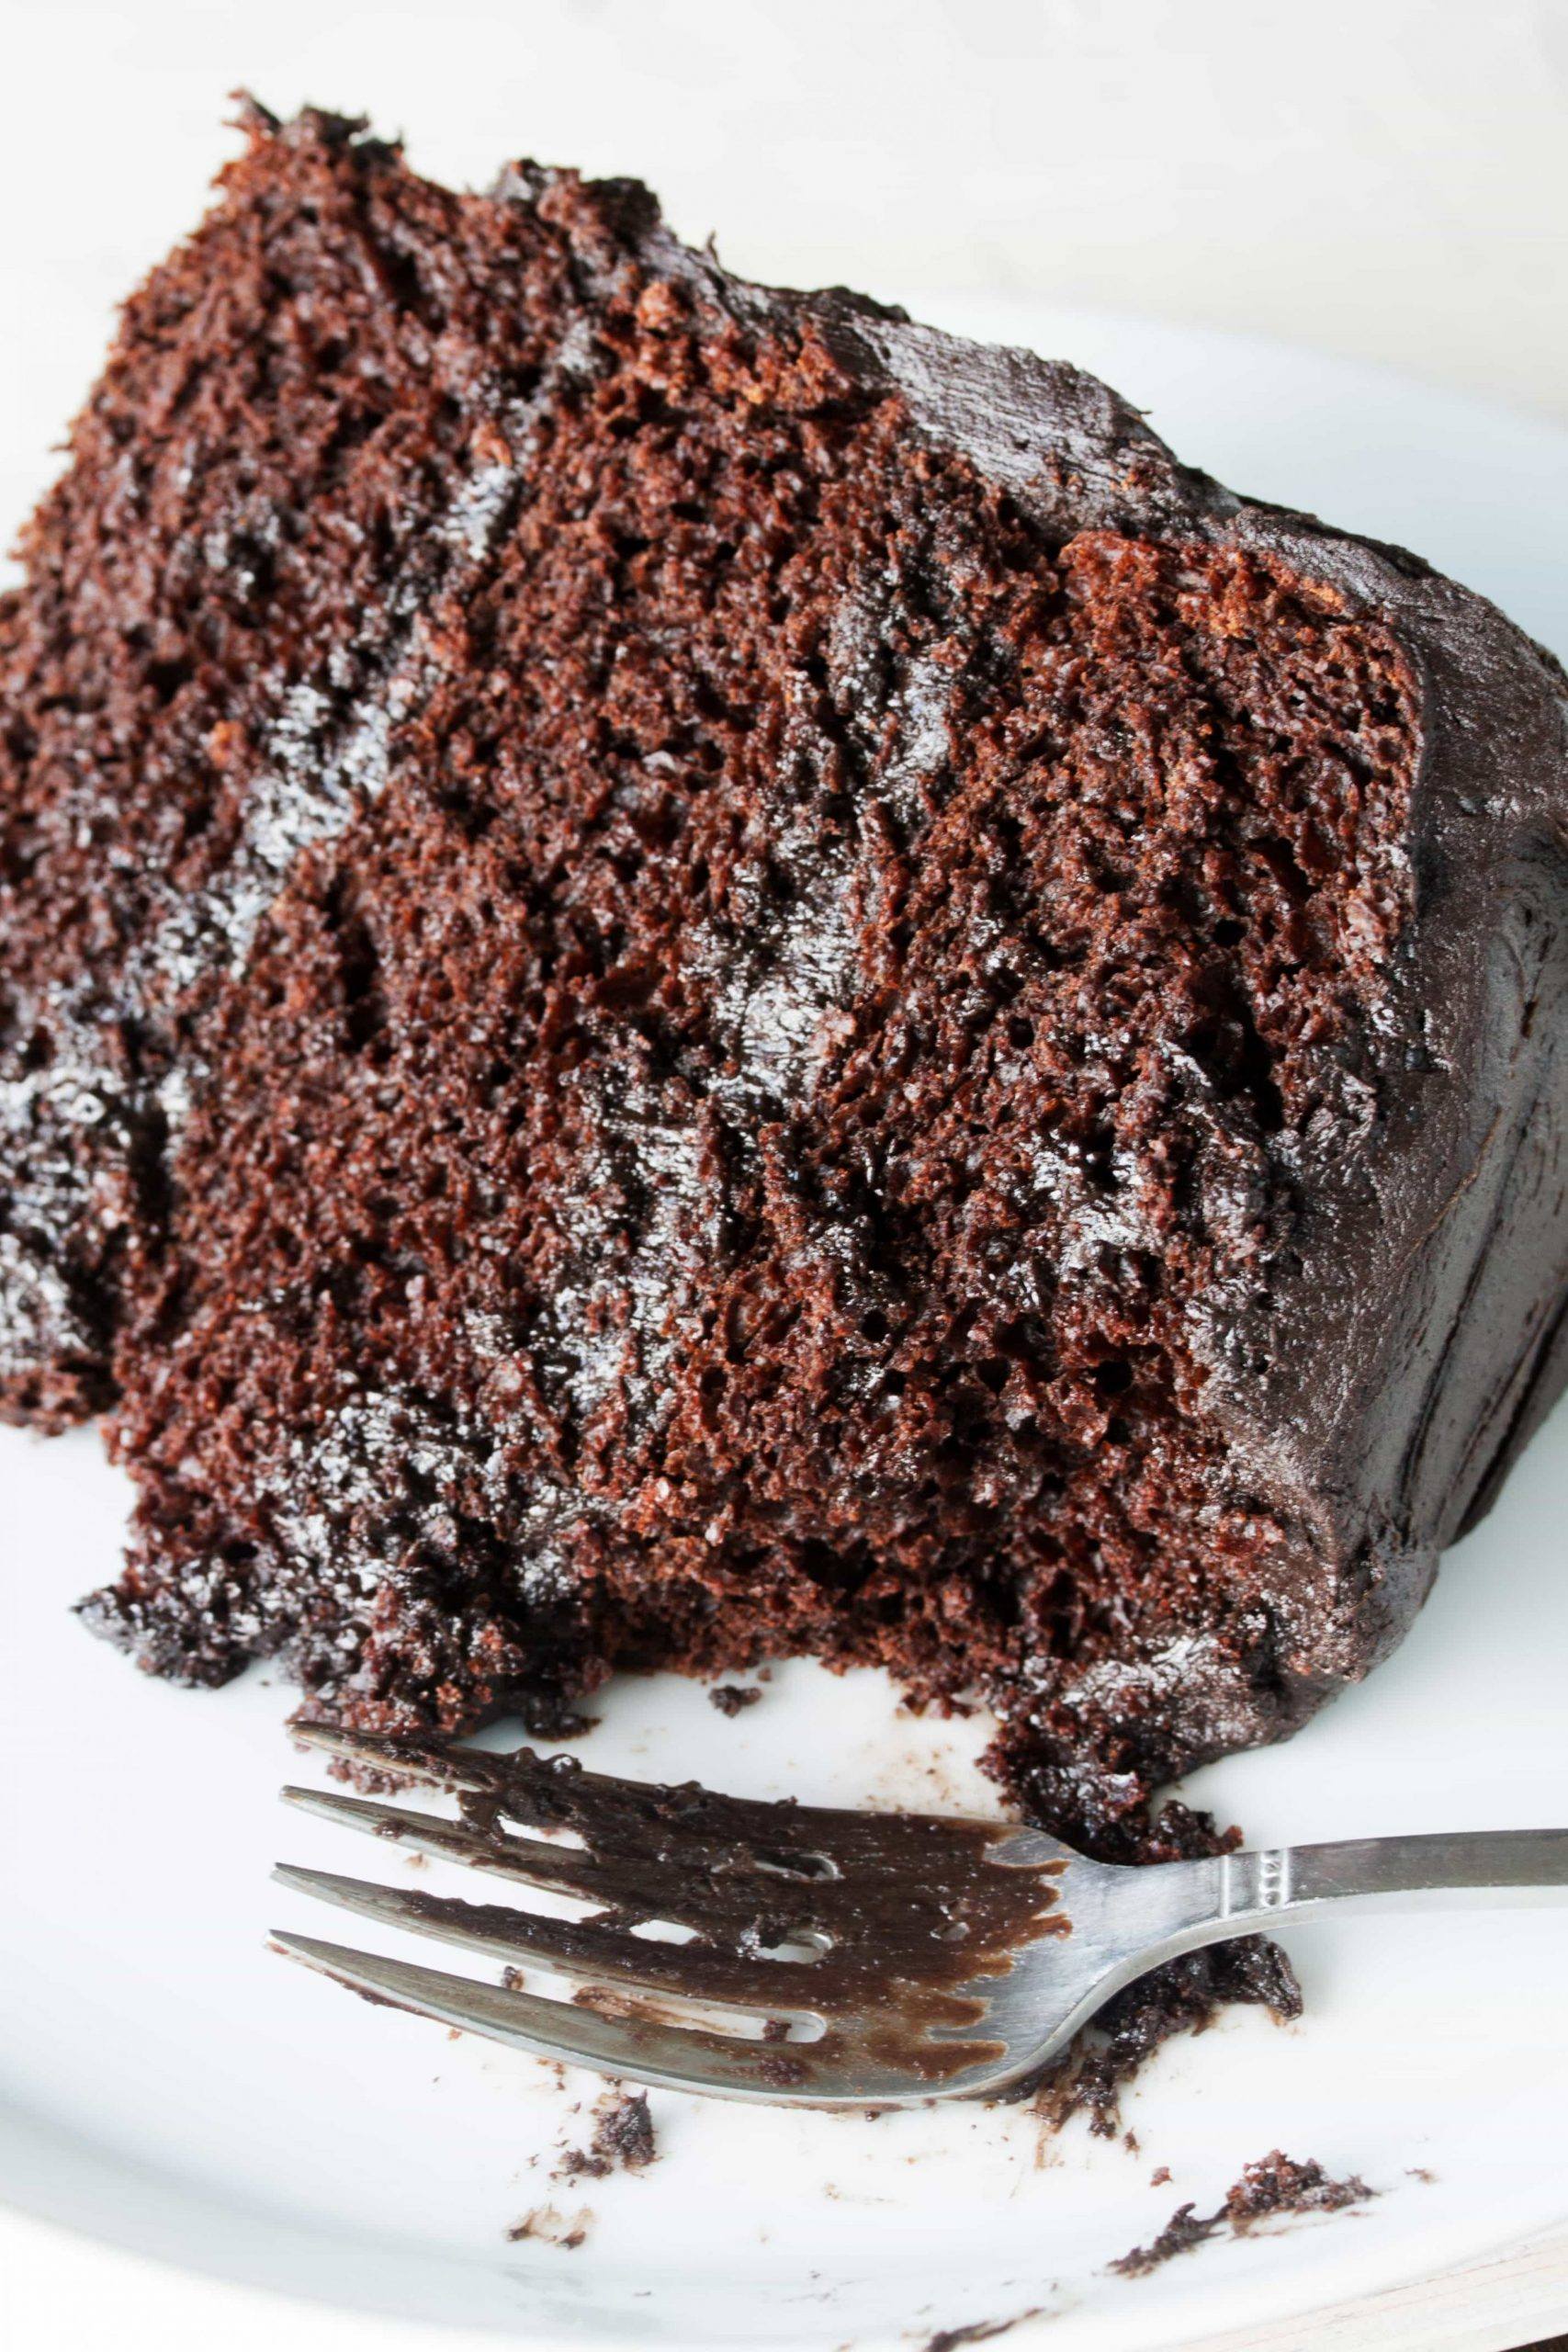 The Most Amazing Chocolate Cake - Recipes Chocolate Cake Mix